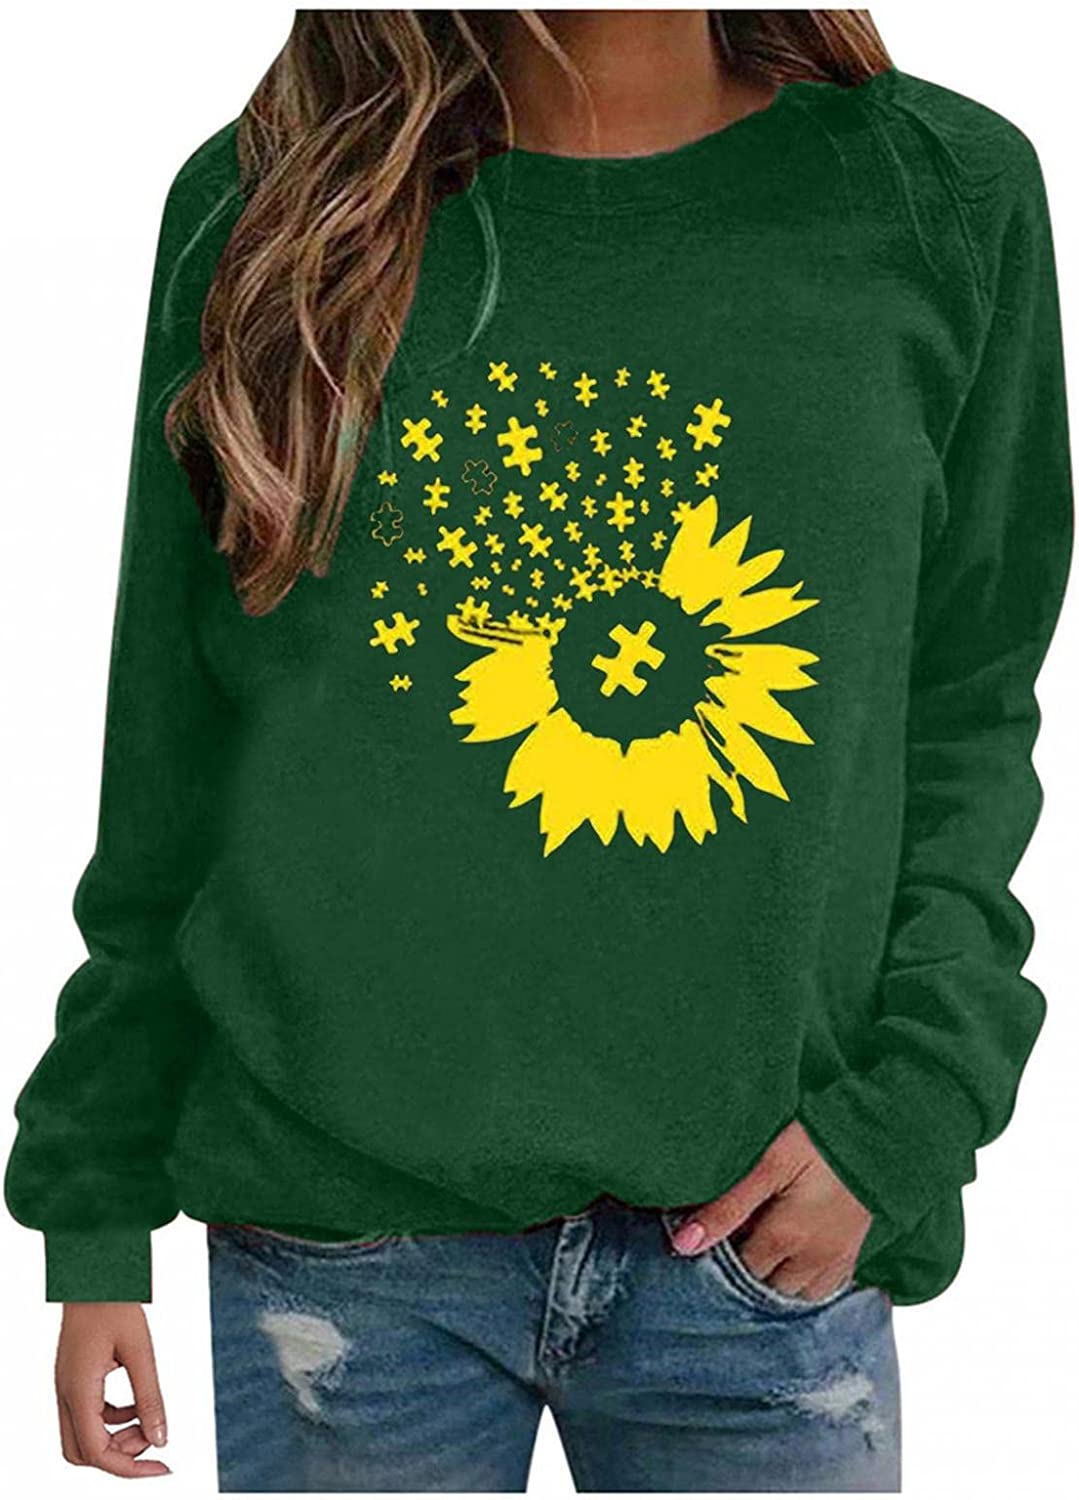 Long Sleeve Tunic Tops for Women Sunflower Printed Fall Shirts Crewneck Sweatshirts Basic Casual Pullover